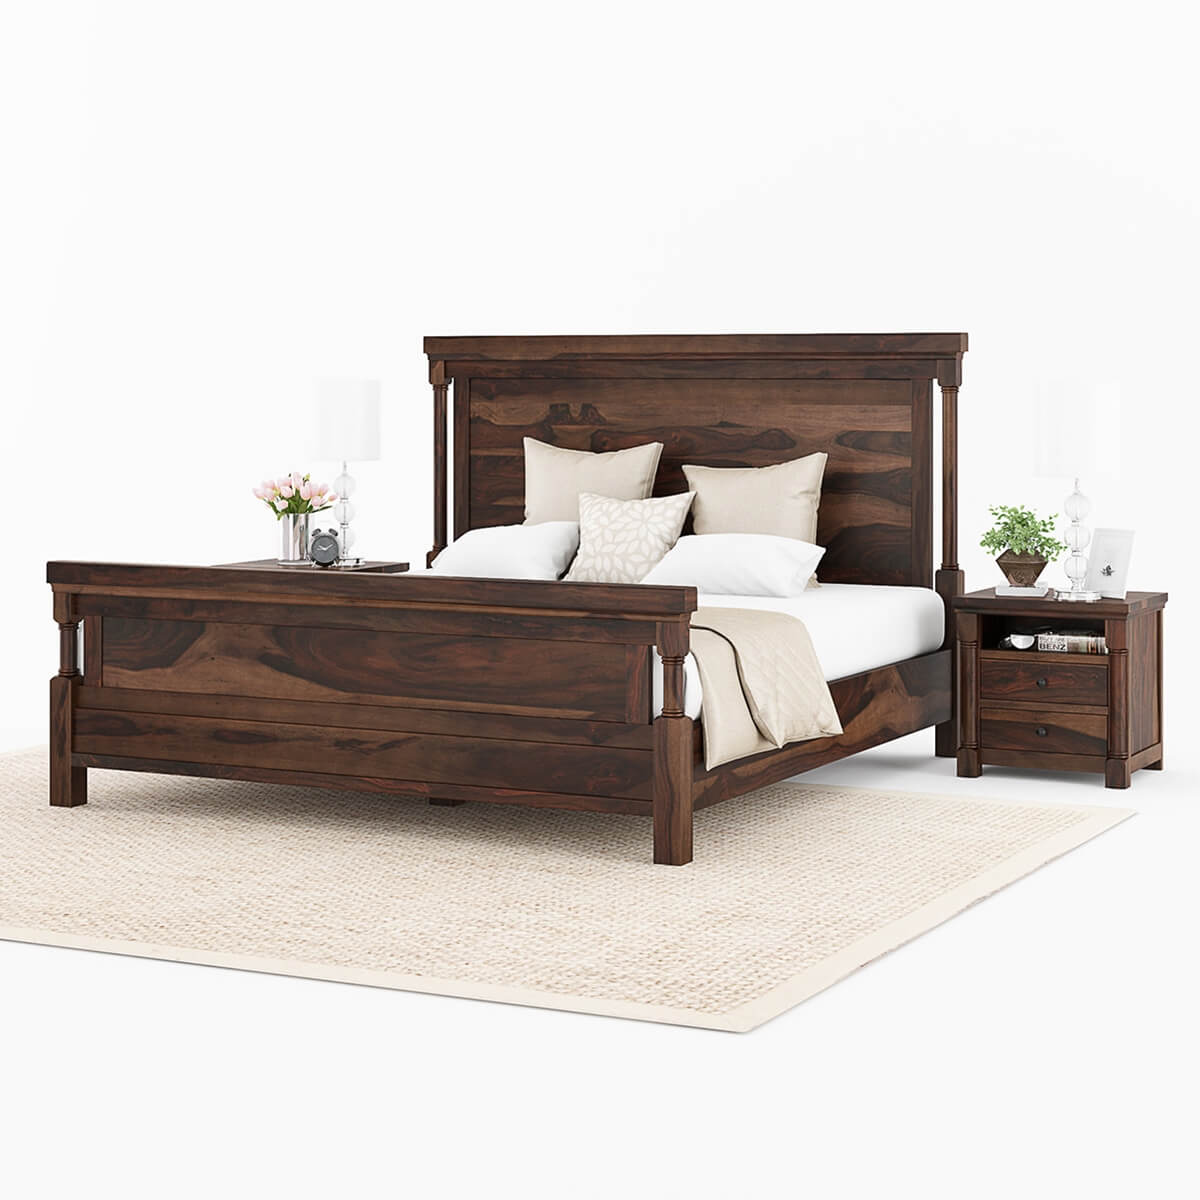 Solid Wood Bed Transitional Solid Wood King Size Platform Bed